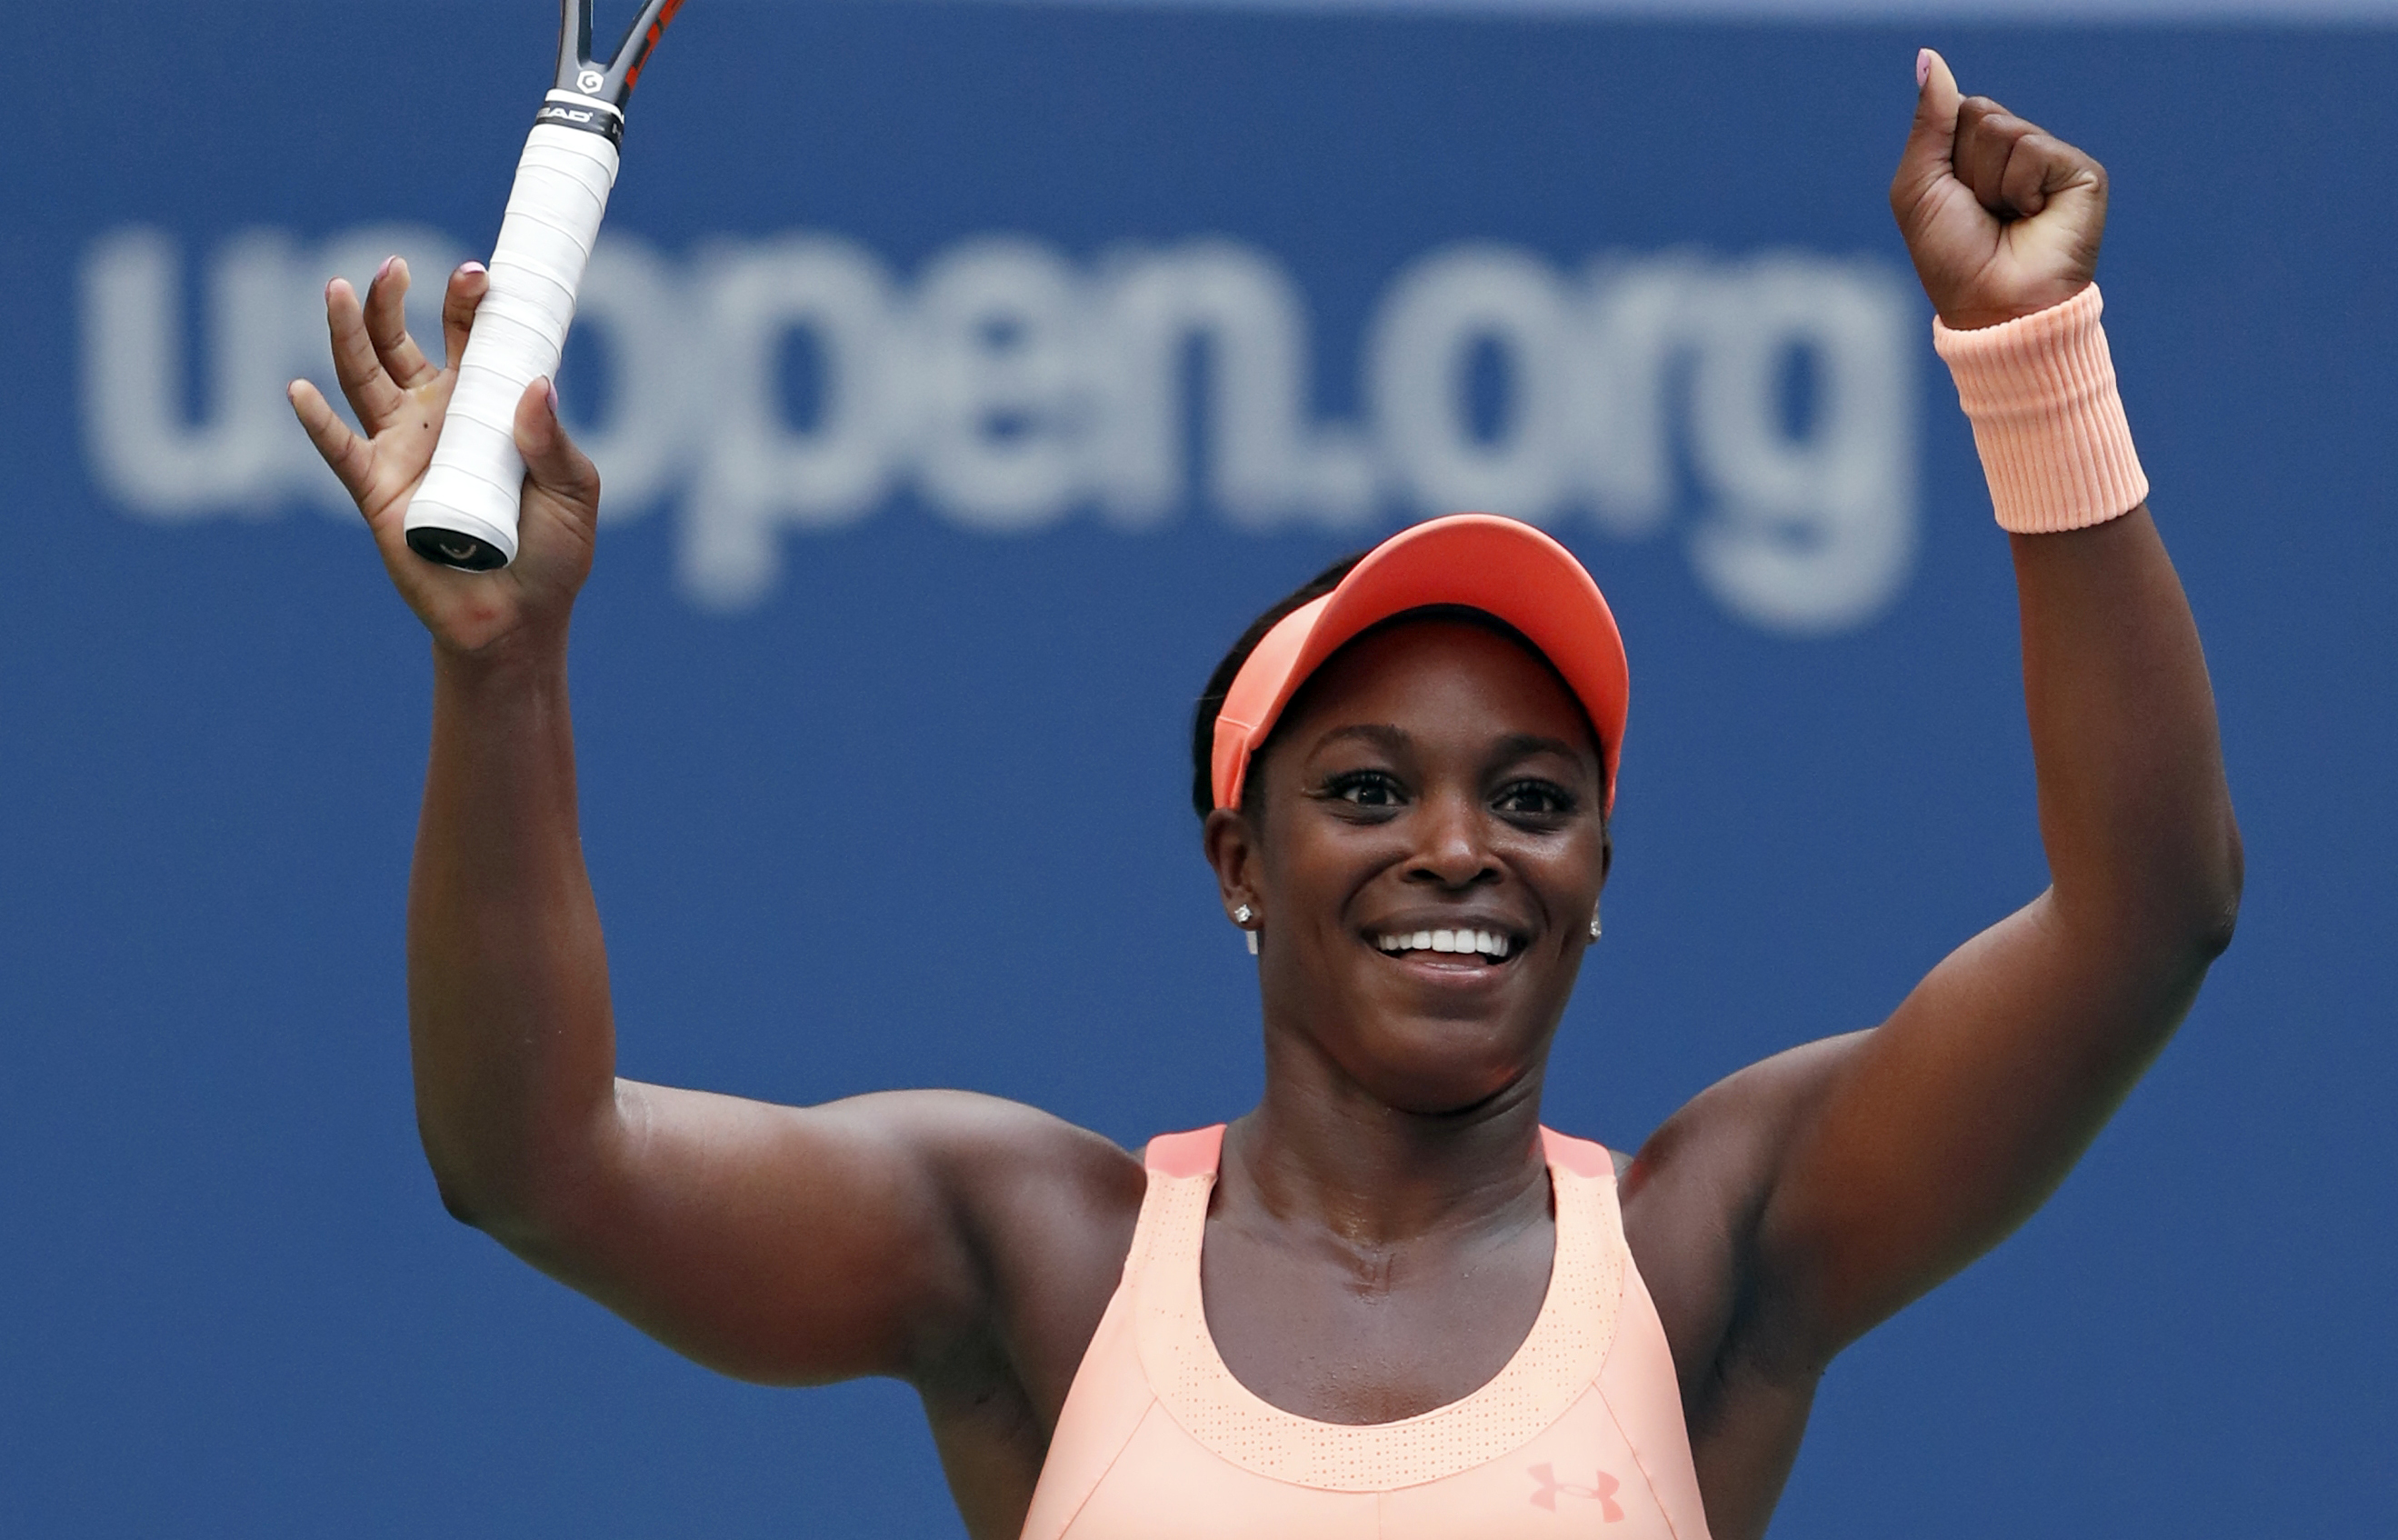 Sloane Stephens, of the United States, reacts after beating Anastasija Sevastova, of Latvia, during the quarterfinals of the U.S. Open tennis tournament, Tuesday, Sept. 5, 2017, in New York. (AP Photo/Adam Hunger)